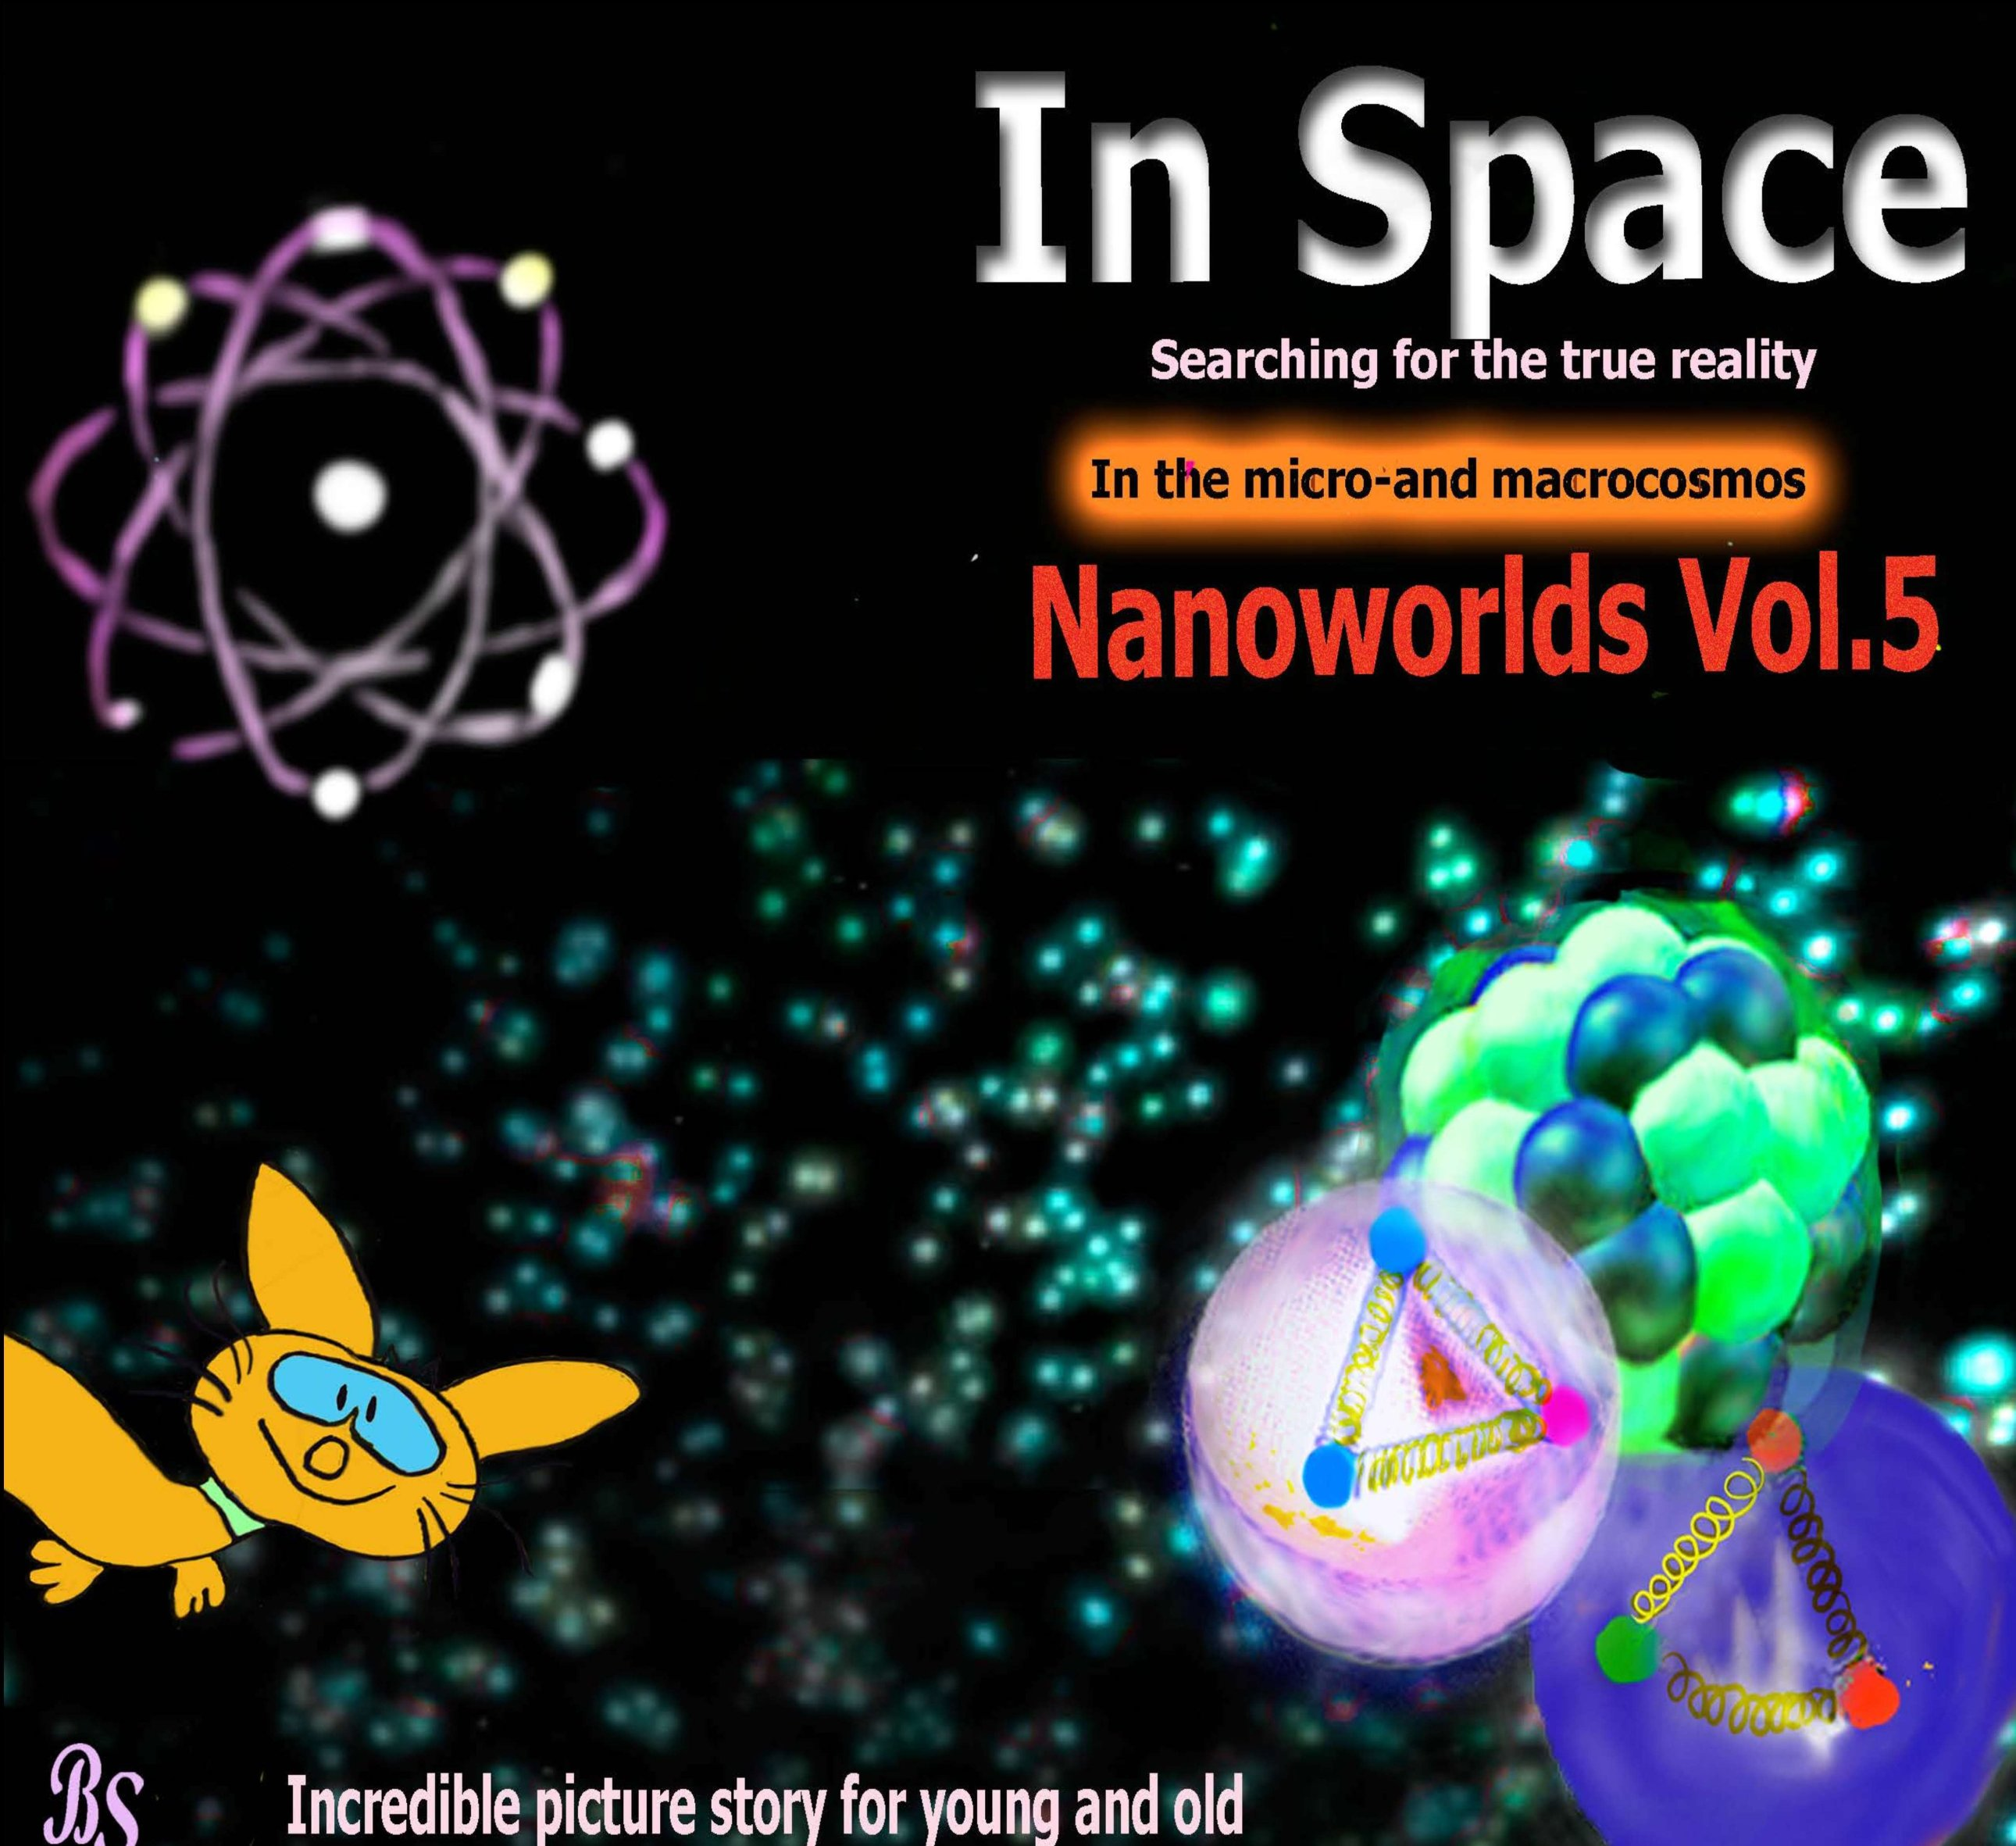 Nanoworlds - Incredible picture story for young and old